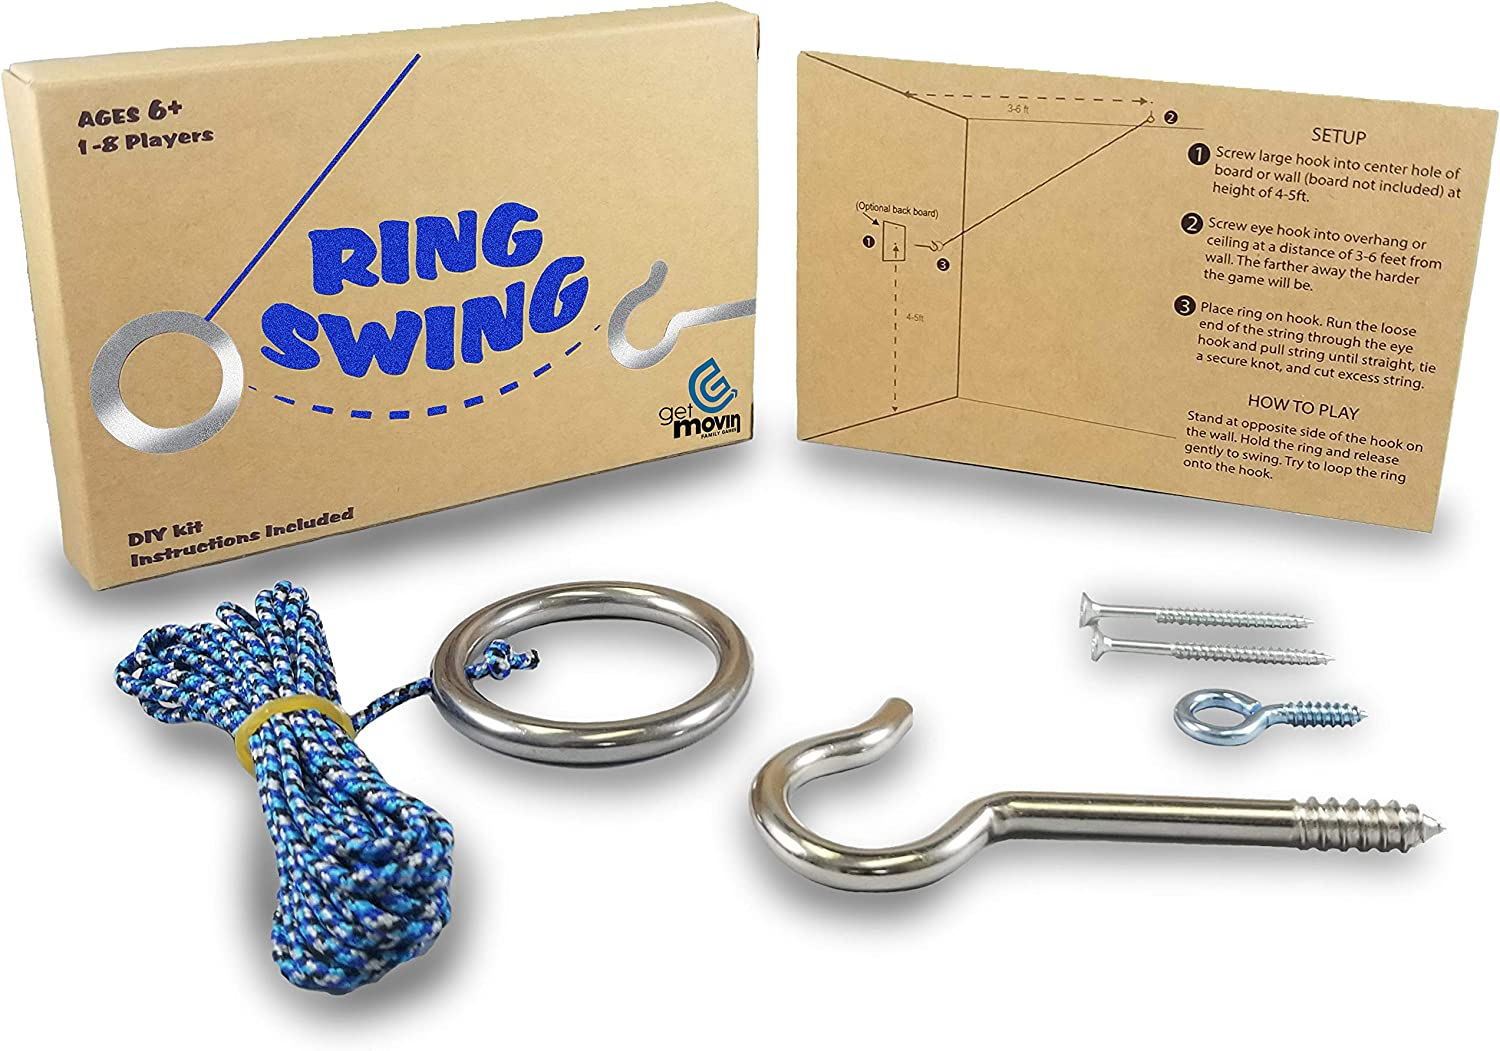 GETMOVIN SPORTS Hook and Ring Swing DIY Kit Stainless Steel Hardware and Nylon String Ring Toss Game Indoor – Outdoor for Endless Hours of Fun!